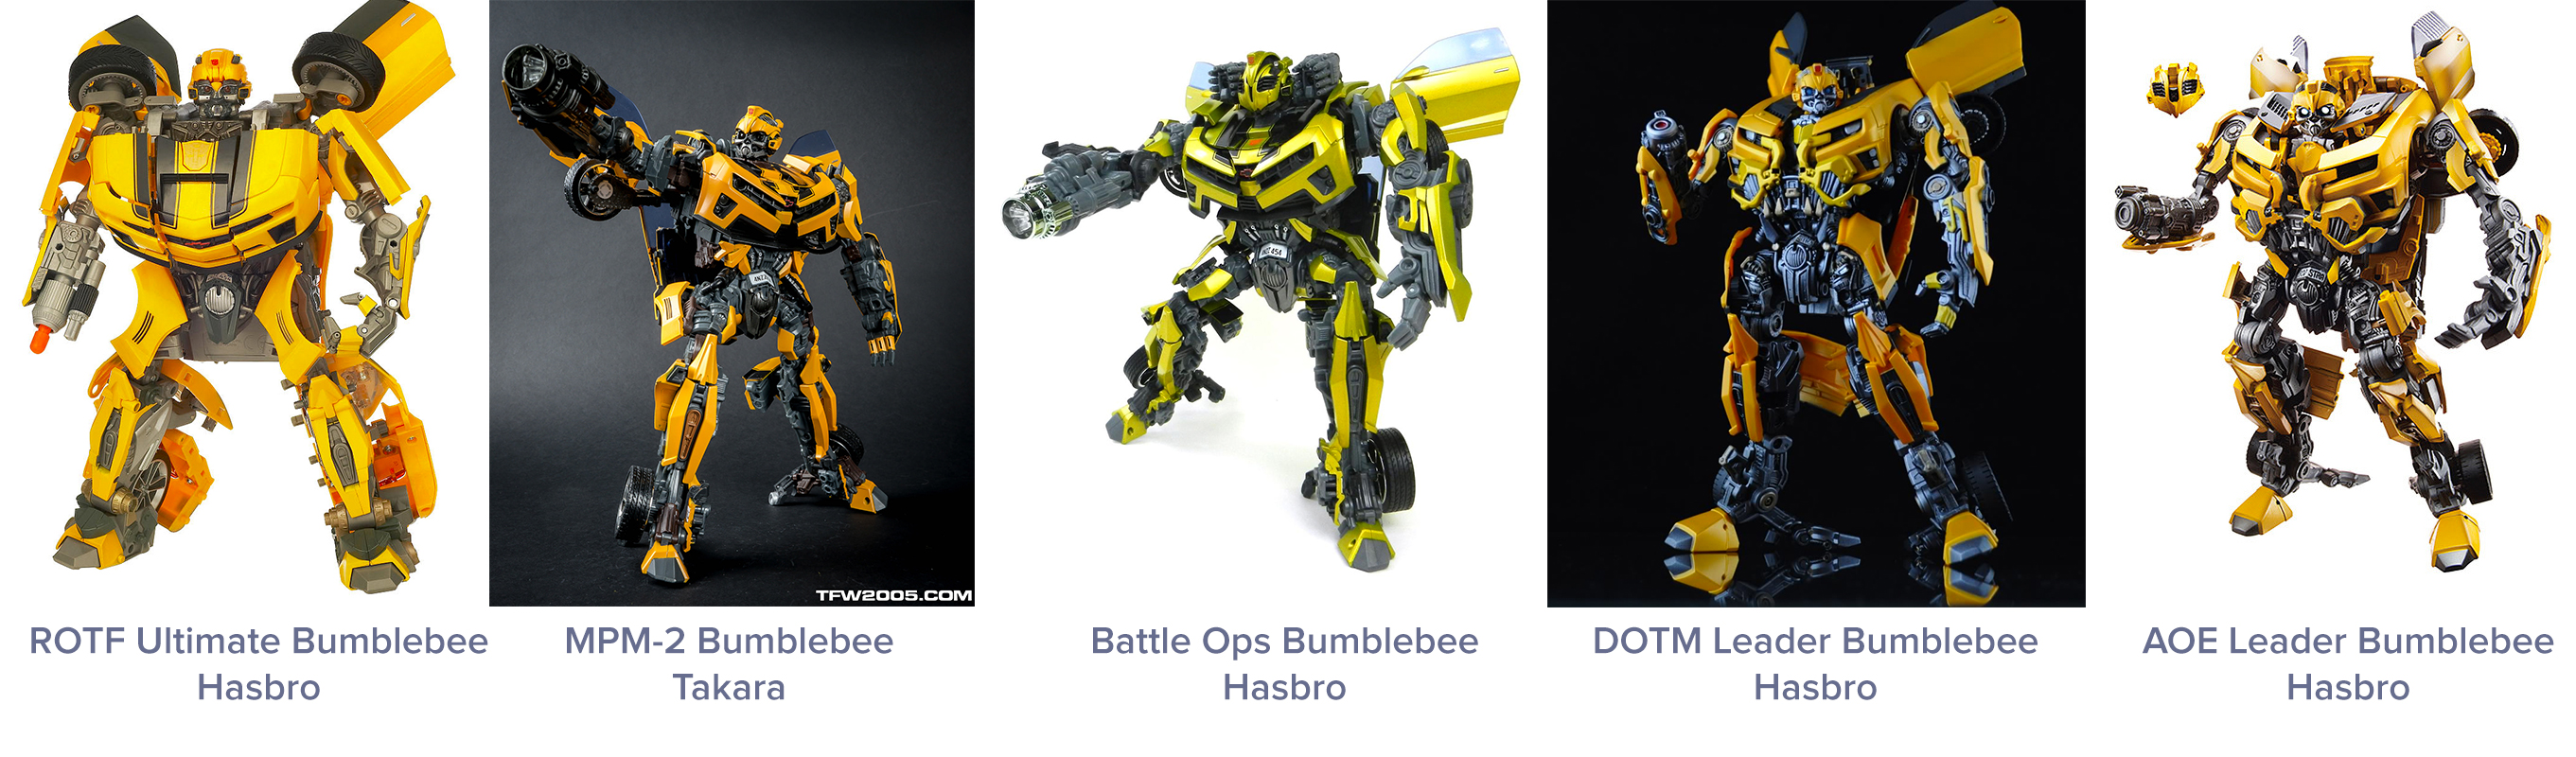 large-movie-bumblebee-toys